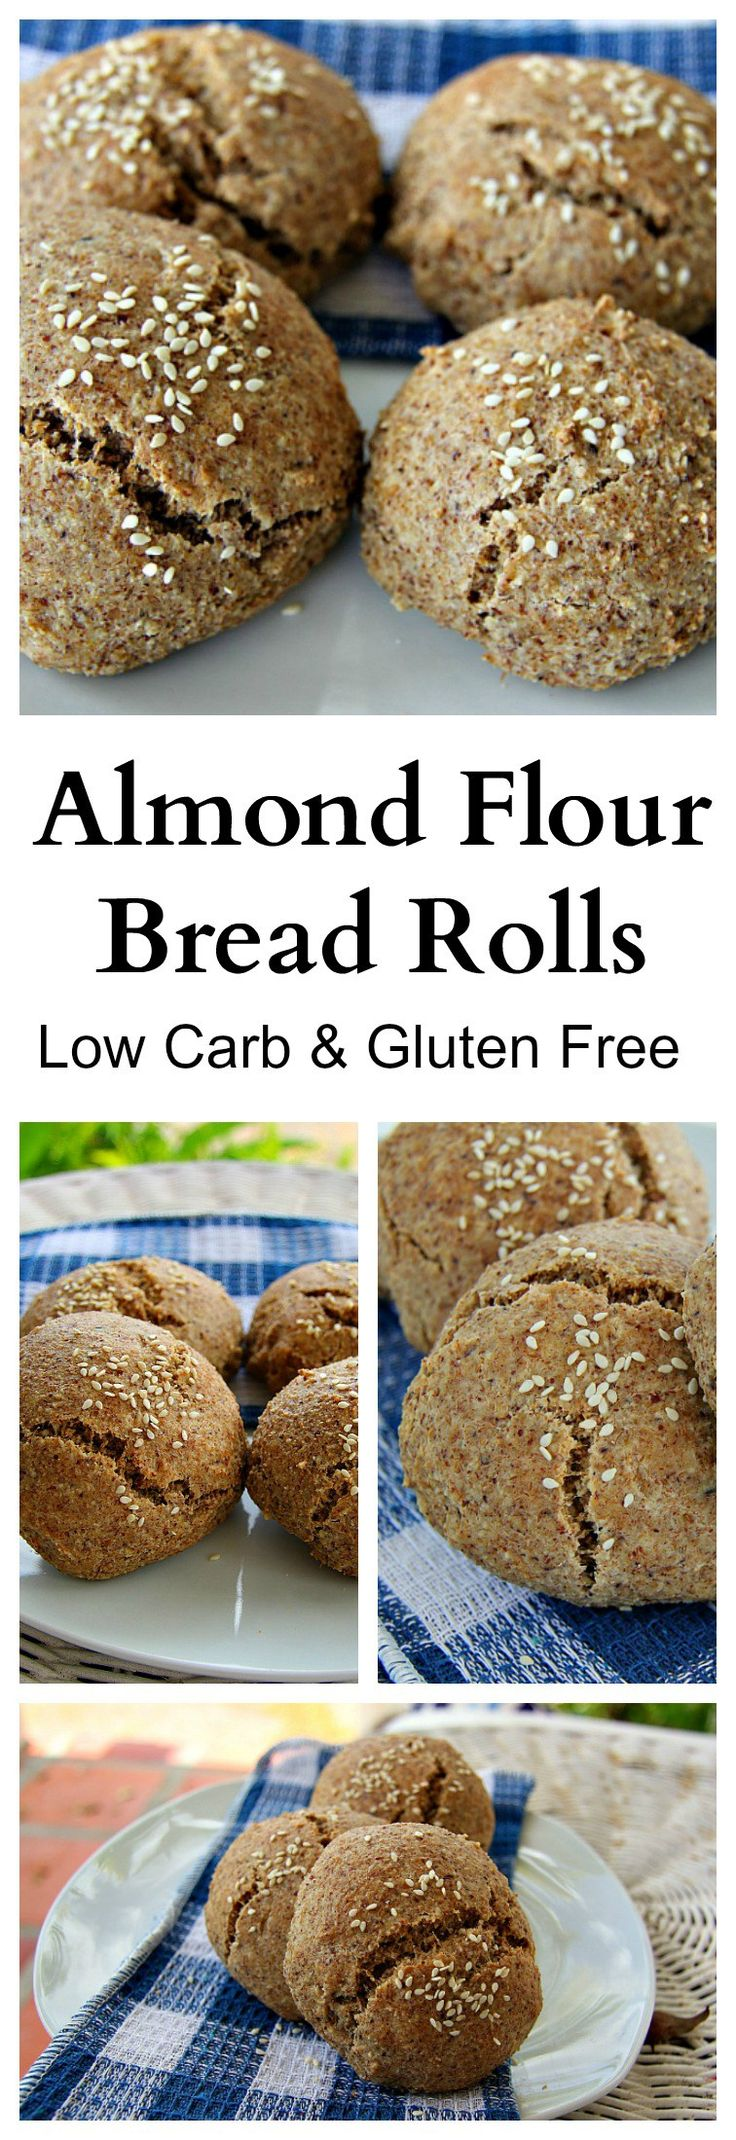 "ALMOND FLOUR BREAD ROLLS - ""This low carb and gluten free almond flour bread roll recipe is one of the best alternative to bread I have ever tasted. It looks like dough when you are making it, smells like bread, and looks like bread with air pockets BUT…*drum roll*…is gluten free, grain free, low carb and just fabulous!"""